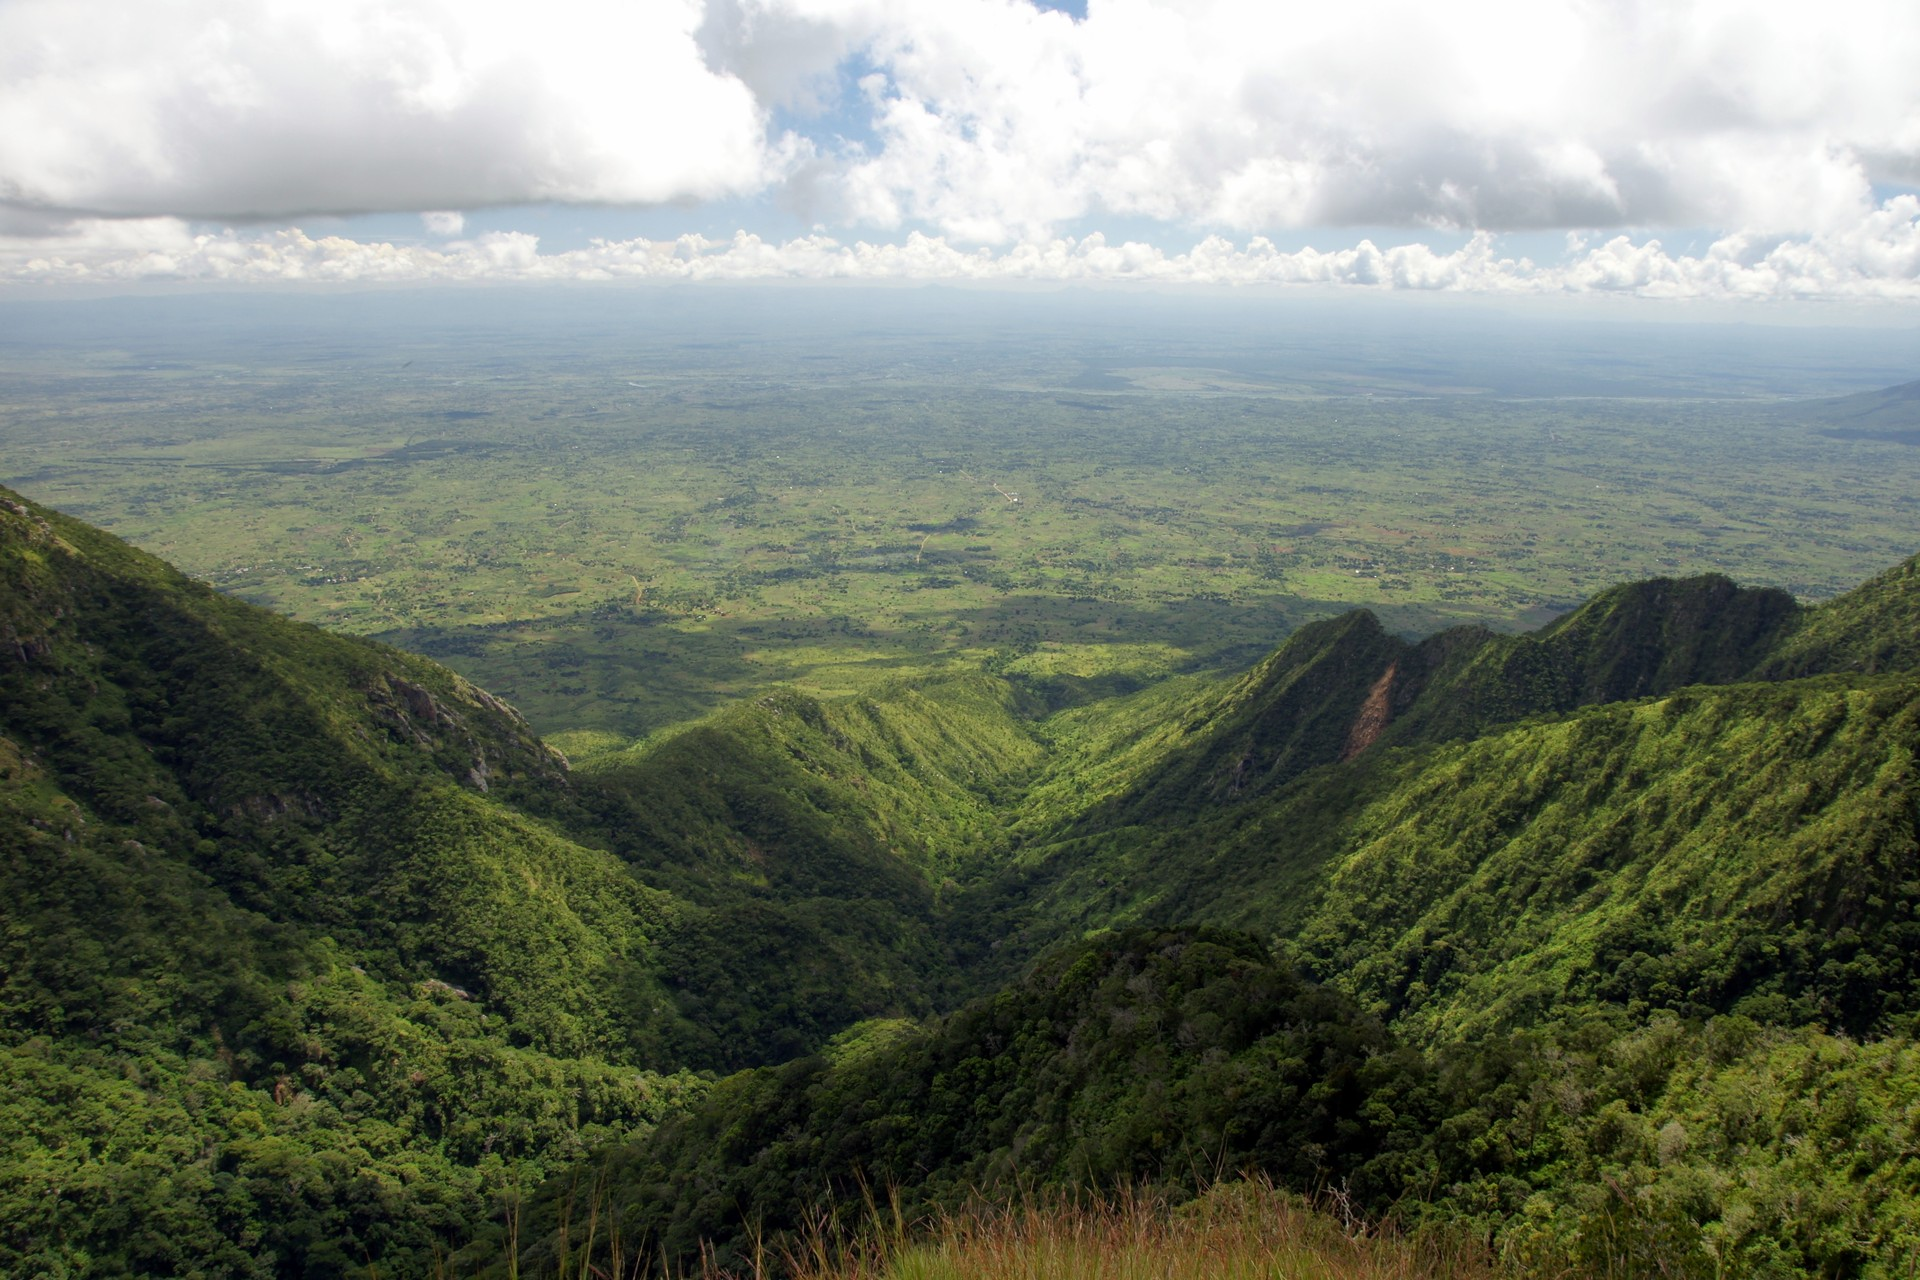 View from the Zomba Plateau in Malawi